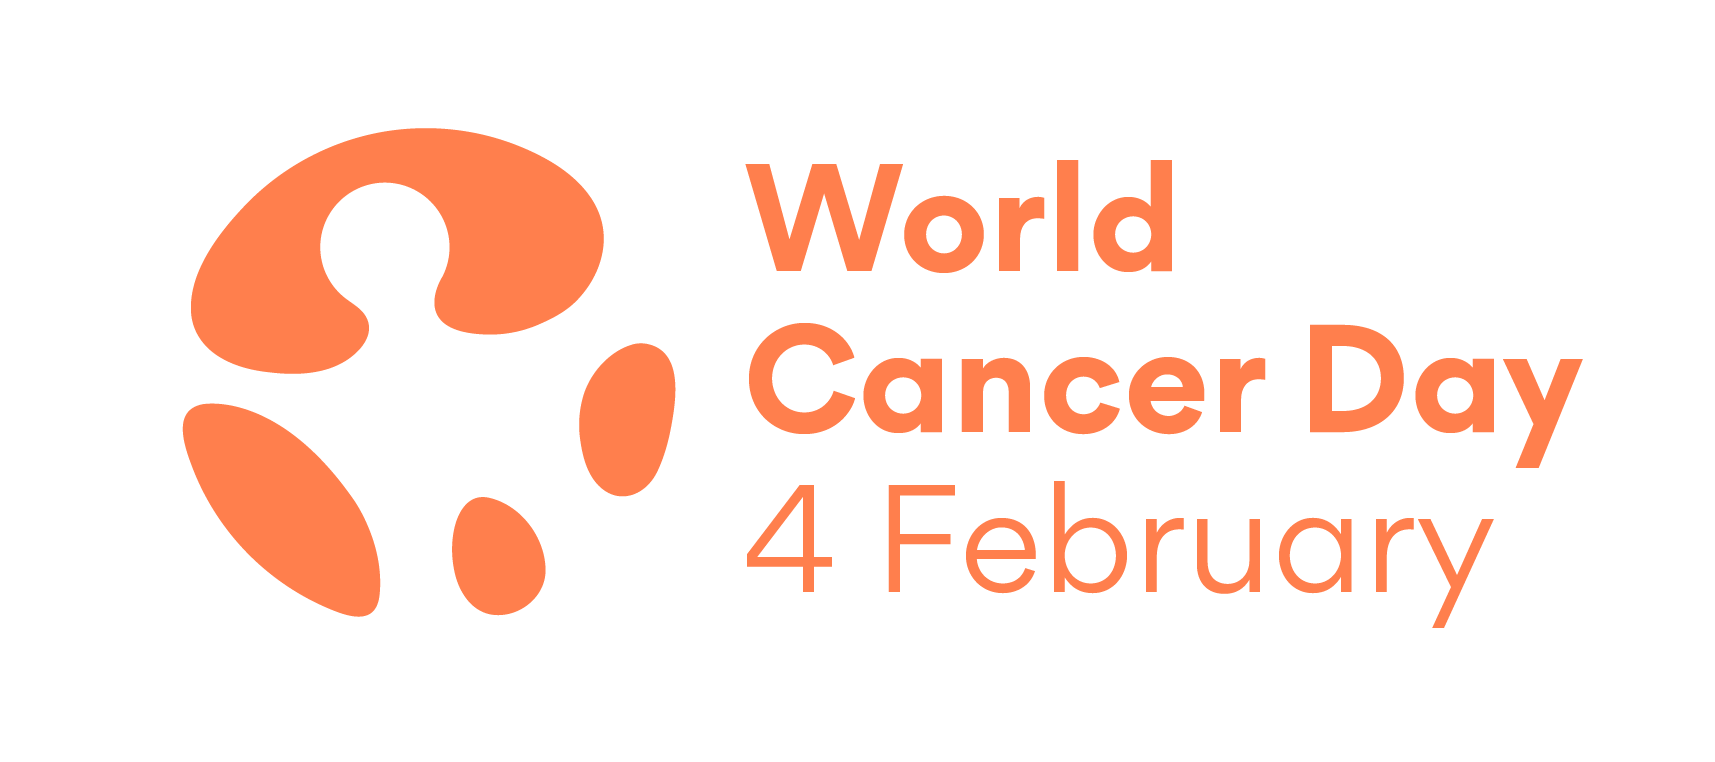 World Cancer Day orange logo